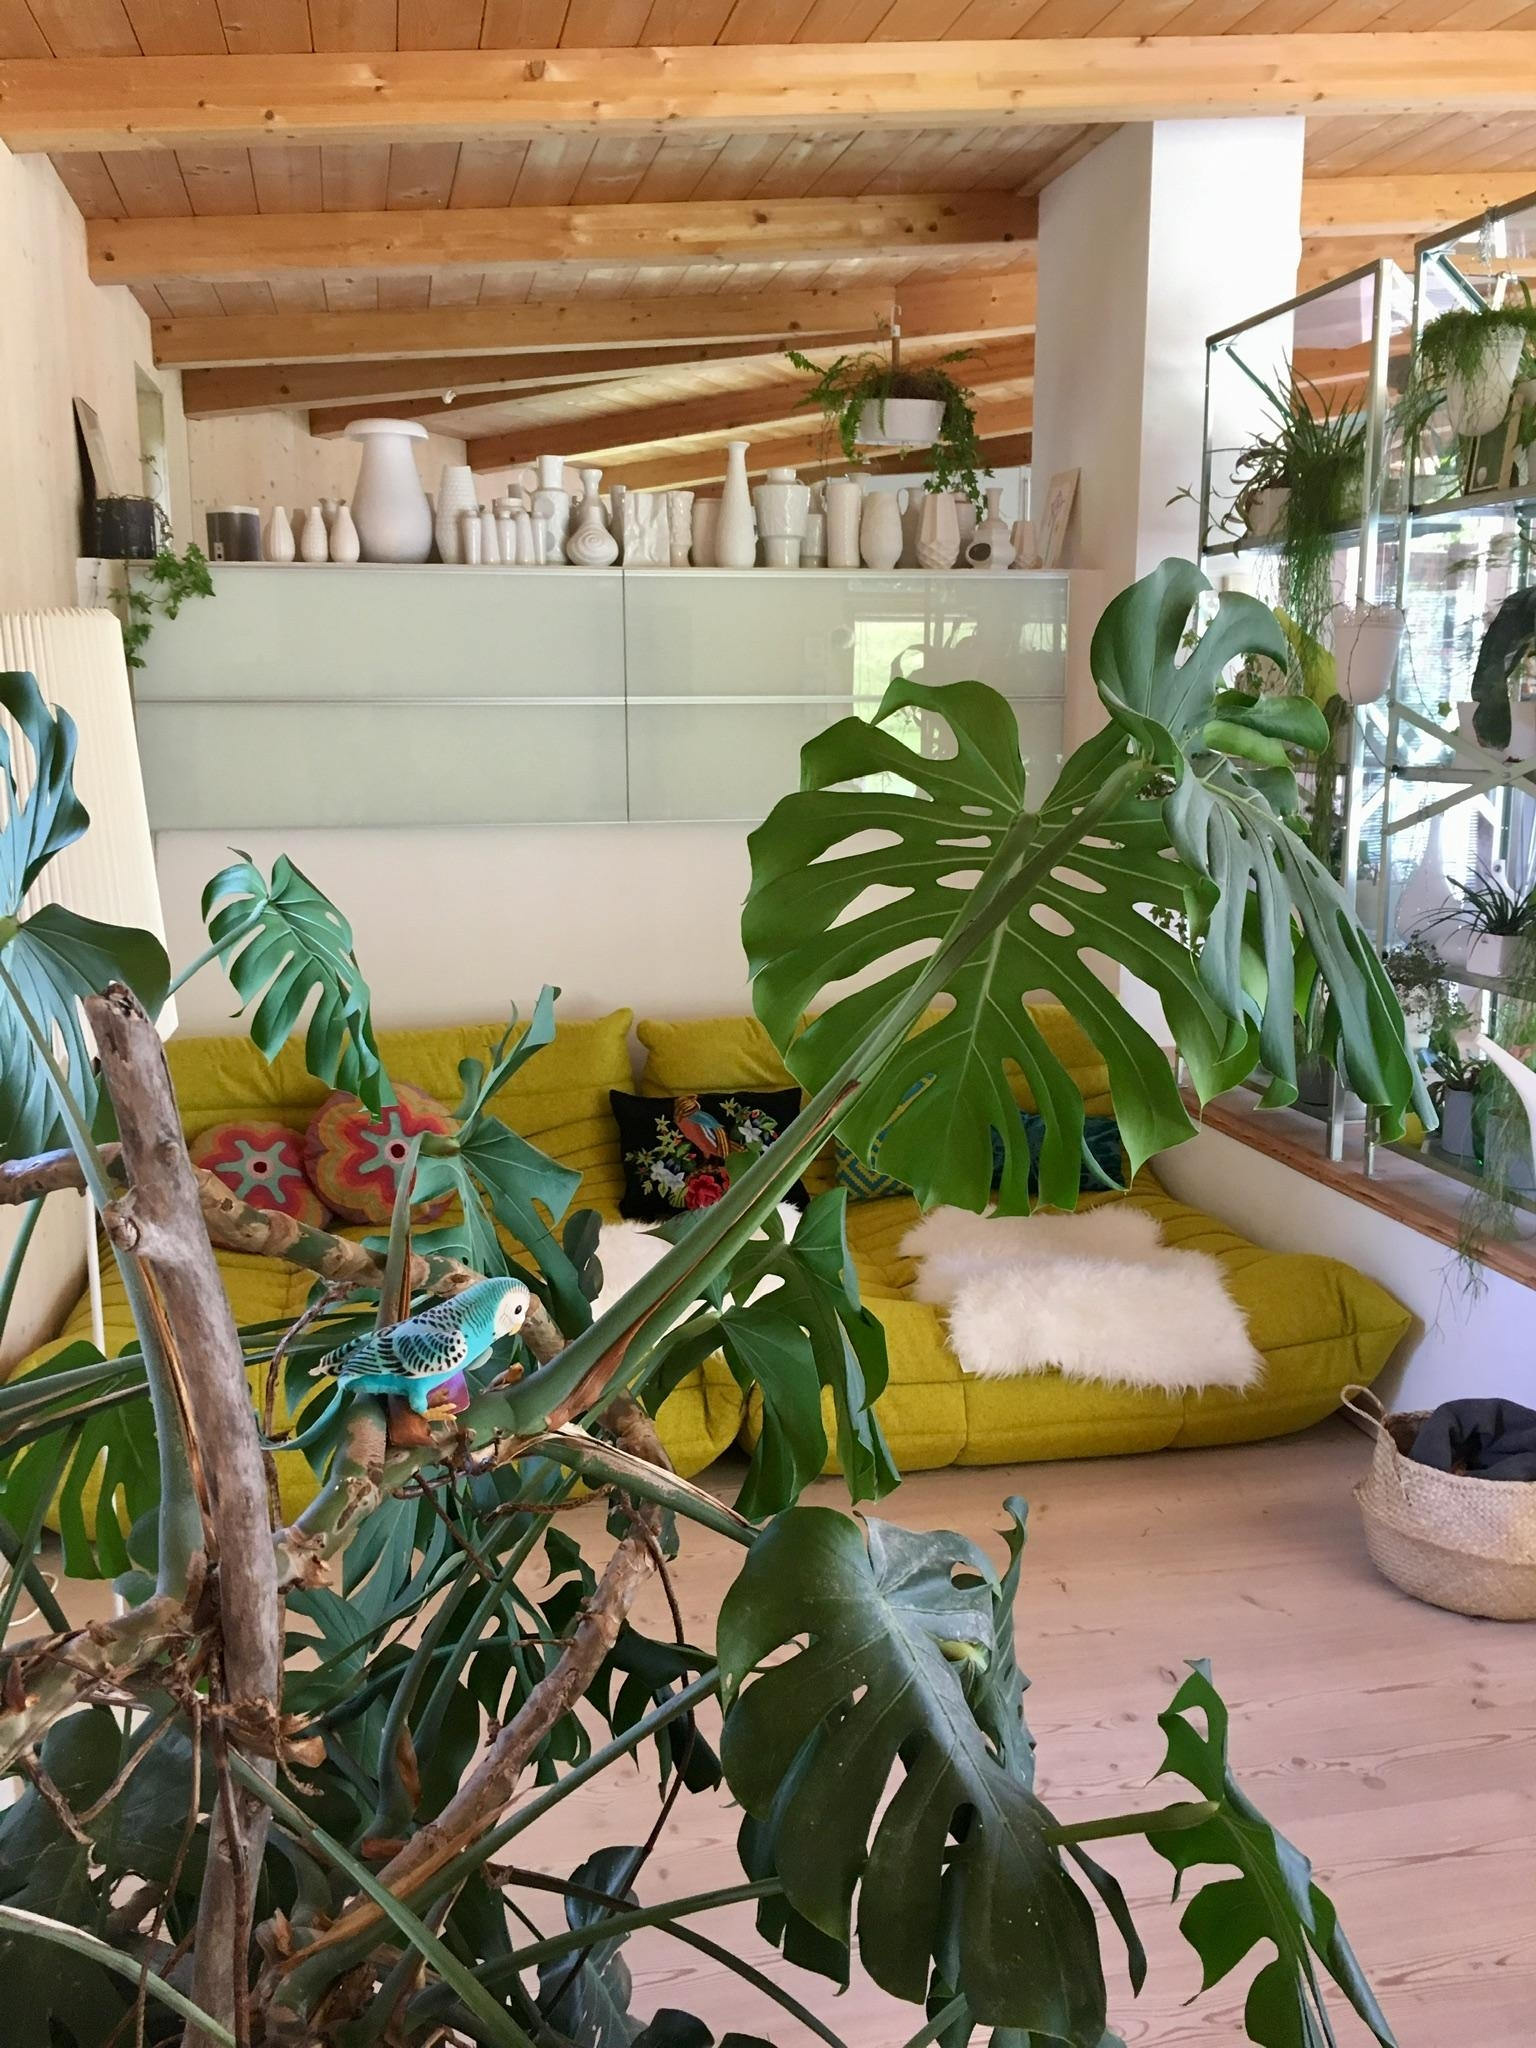 living in the jungle #greenliving #wohnzimmer #urbanjungle #sofa #lieblingsecke #monstera